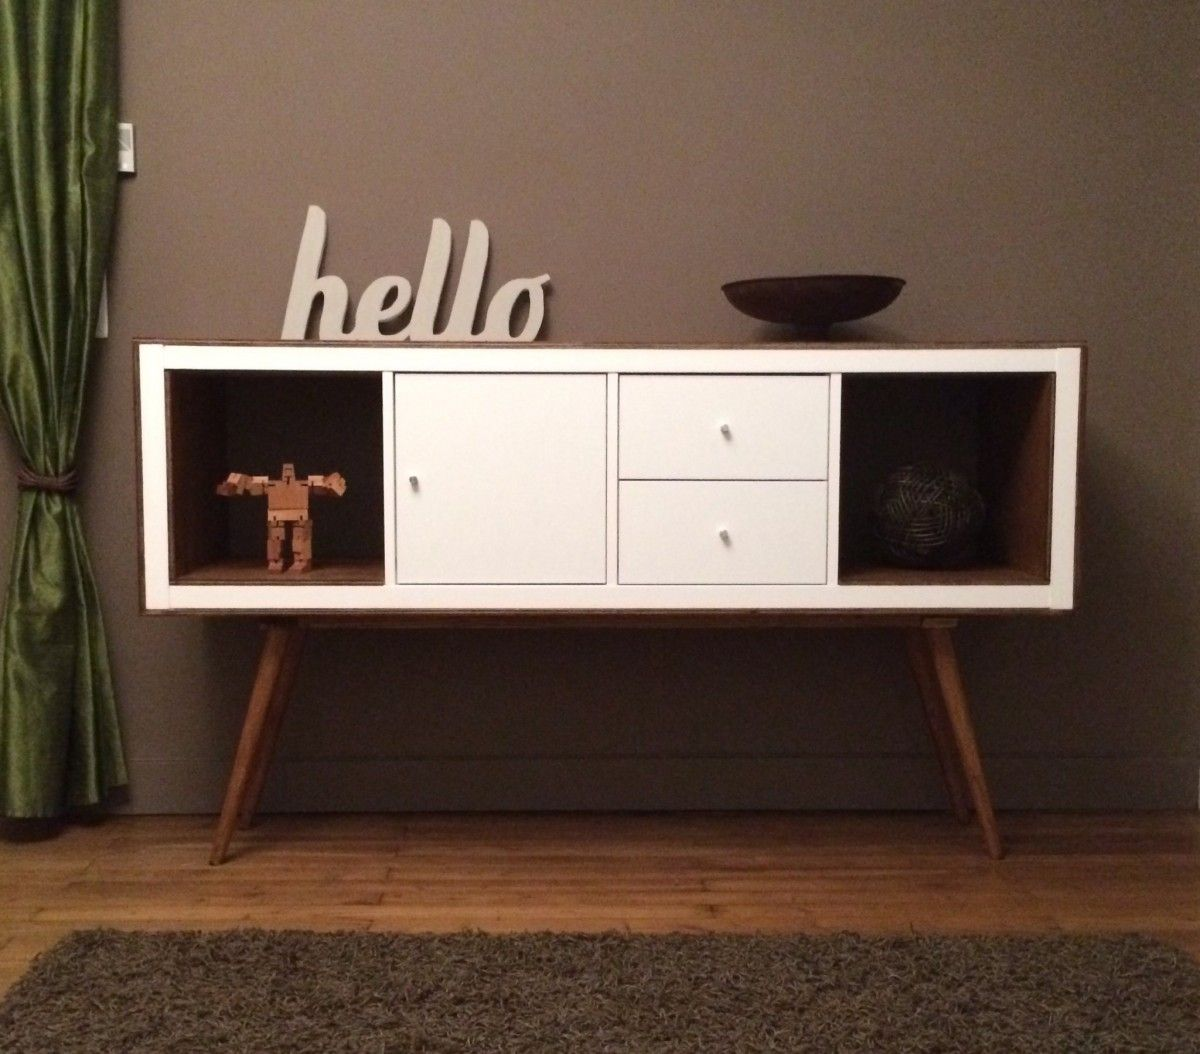 Un meuble styl ann es 50 avec kallax ikea kallax shelf for Meuble console ikea